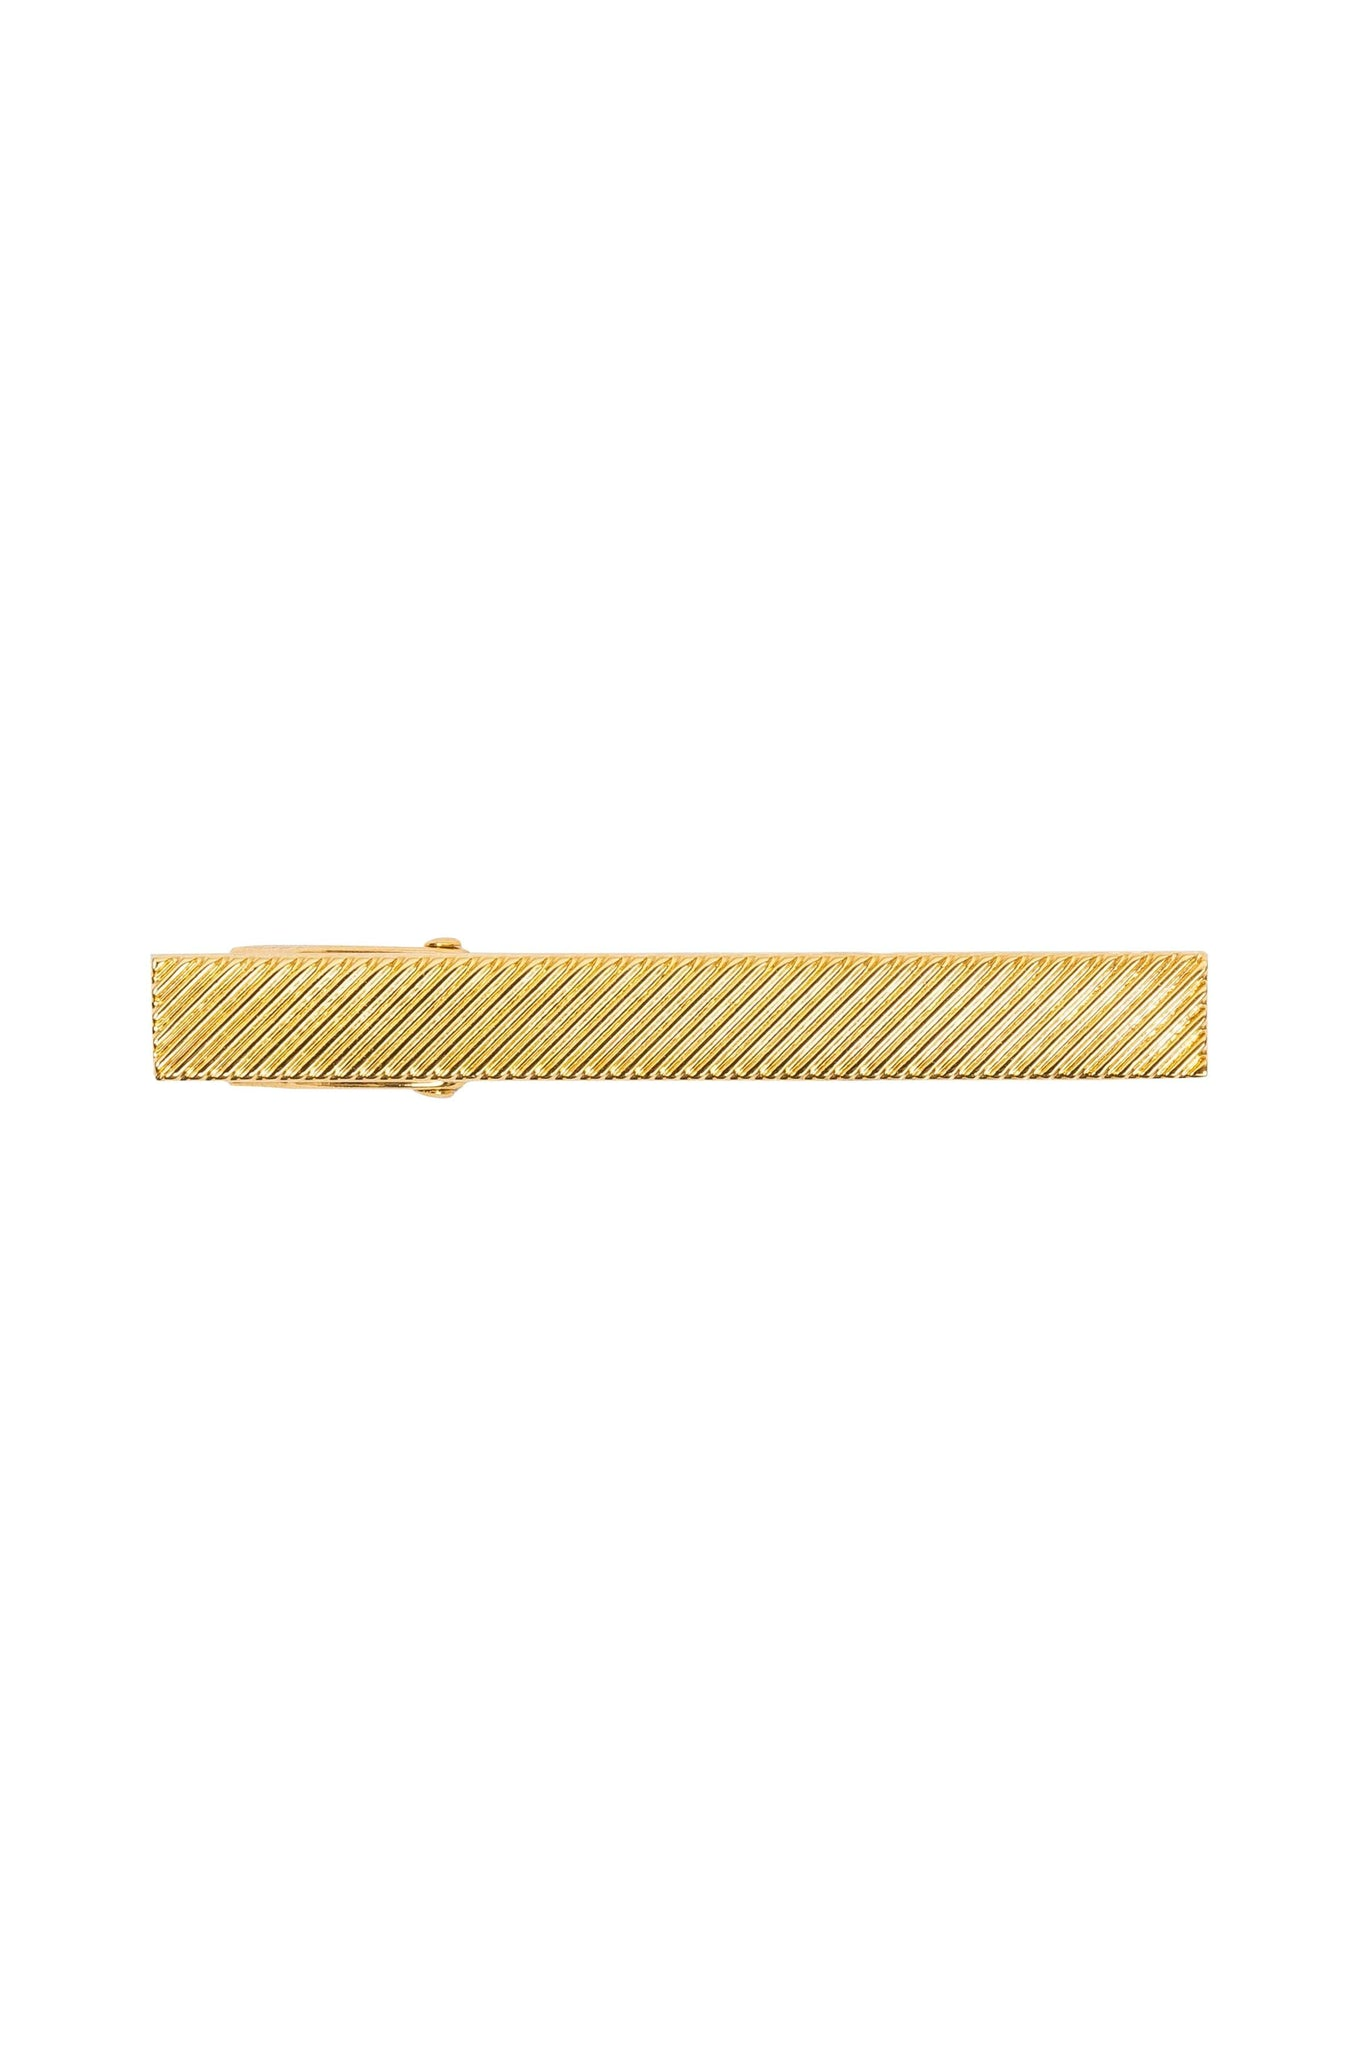 Engraved Golden Bar